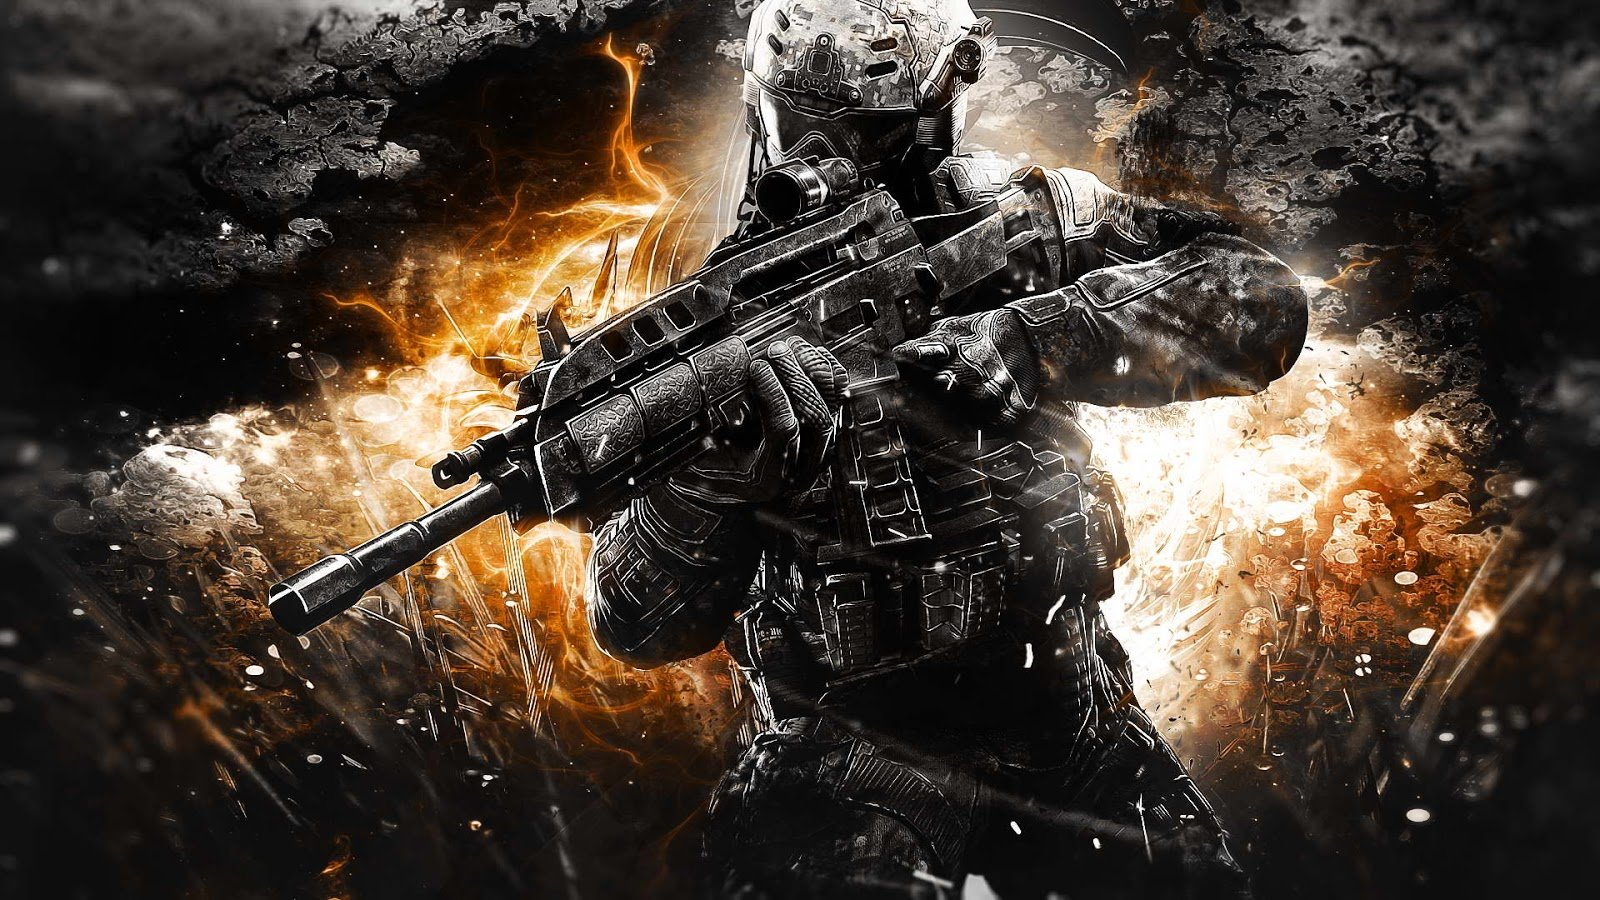 call of duty 2 zombies wallpapercod black ops 2 zombies wallpapers hd 1600x900